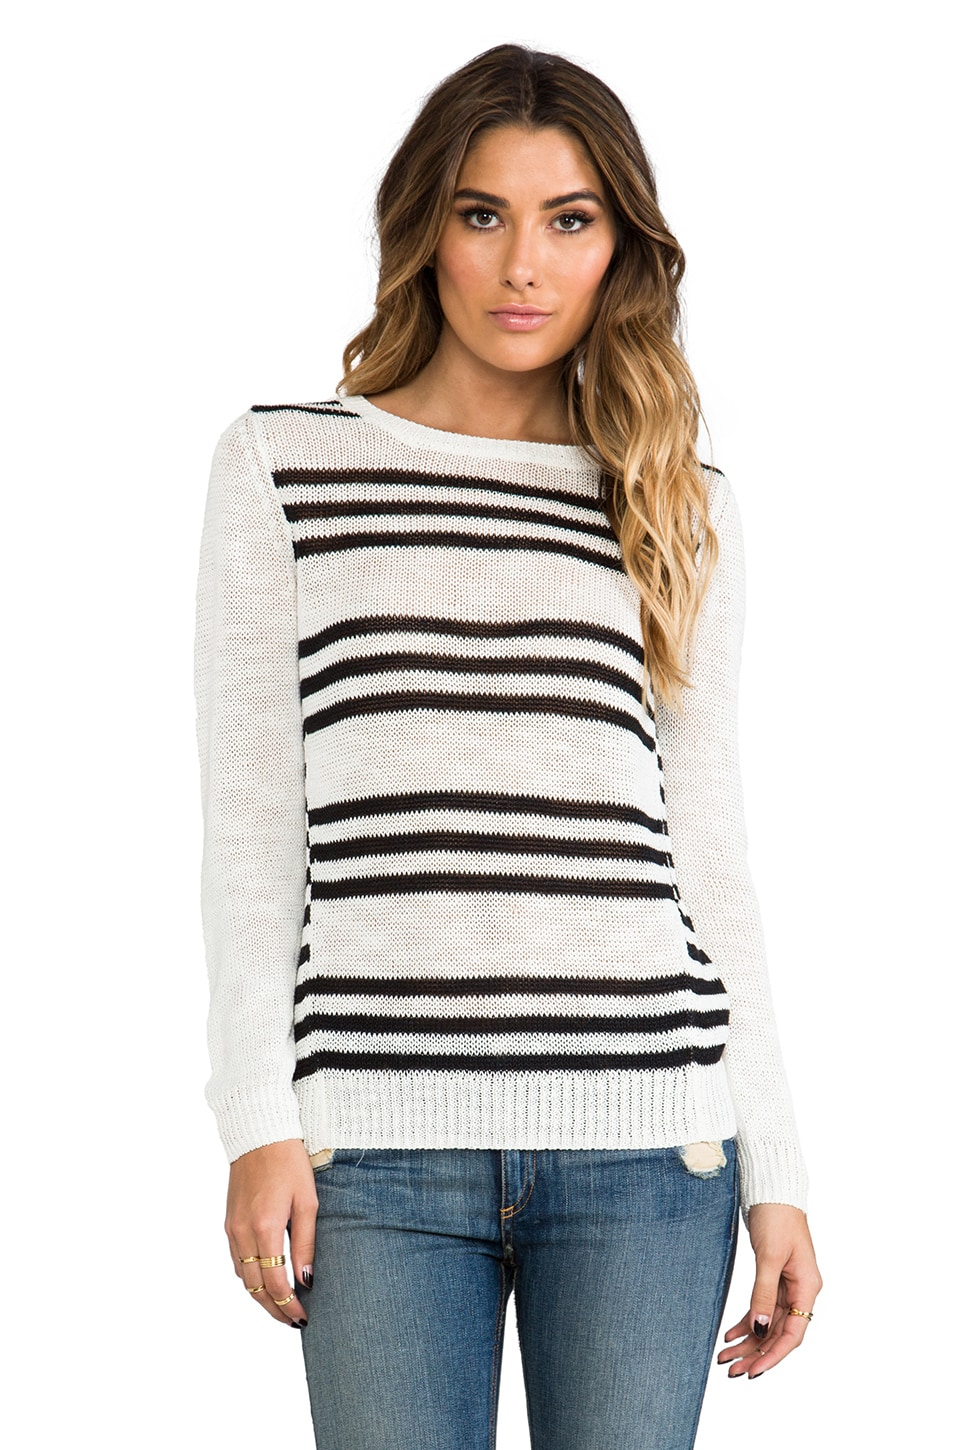 360 Sweater Astra Stripe Sweater in White & Black